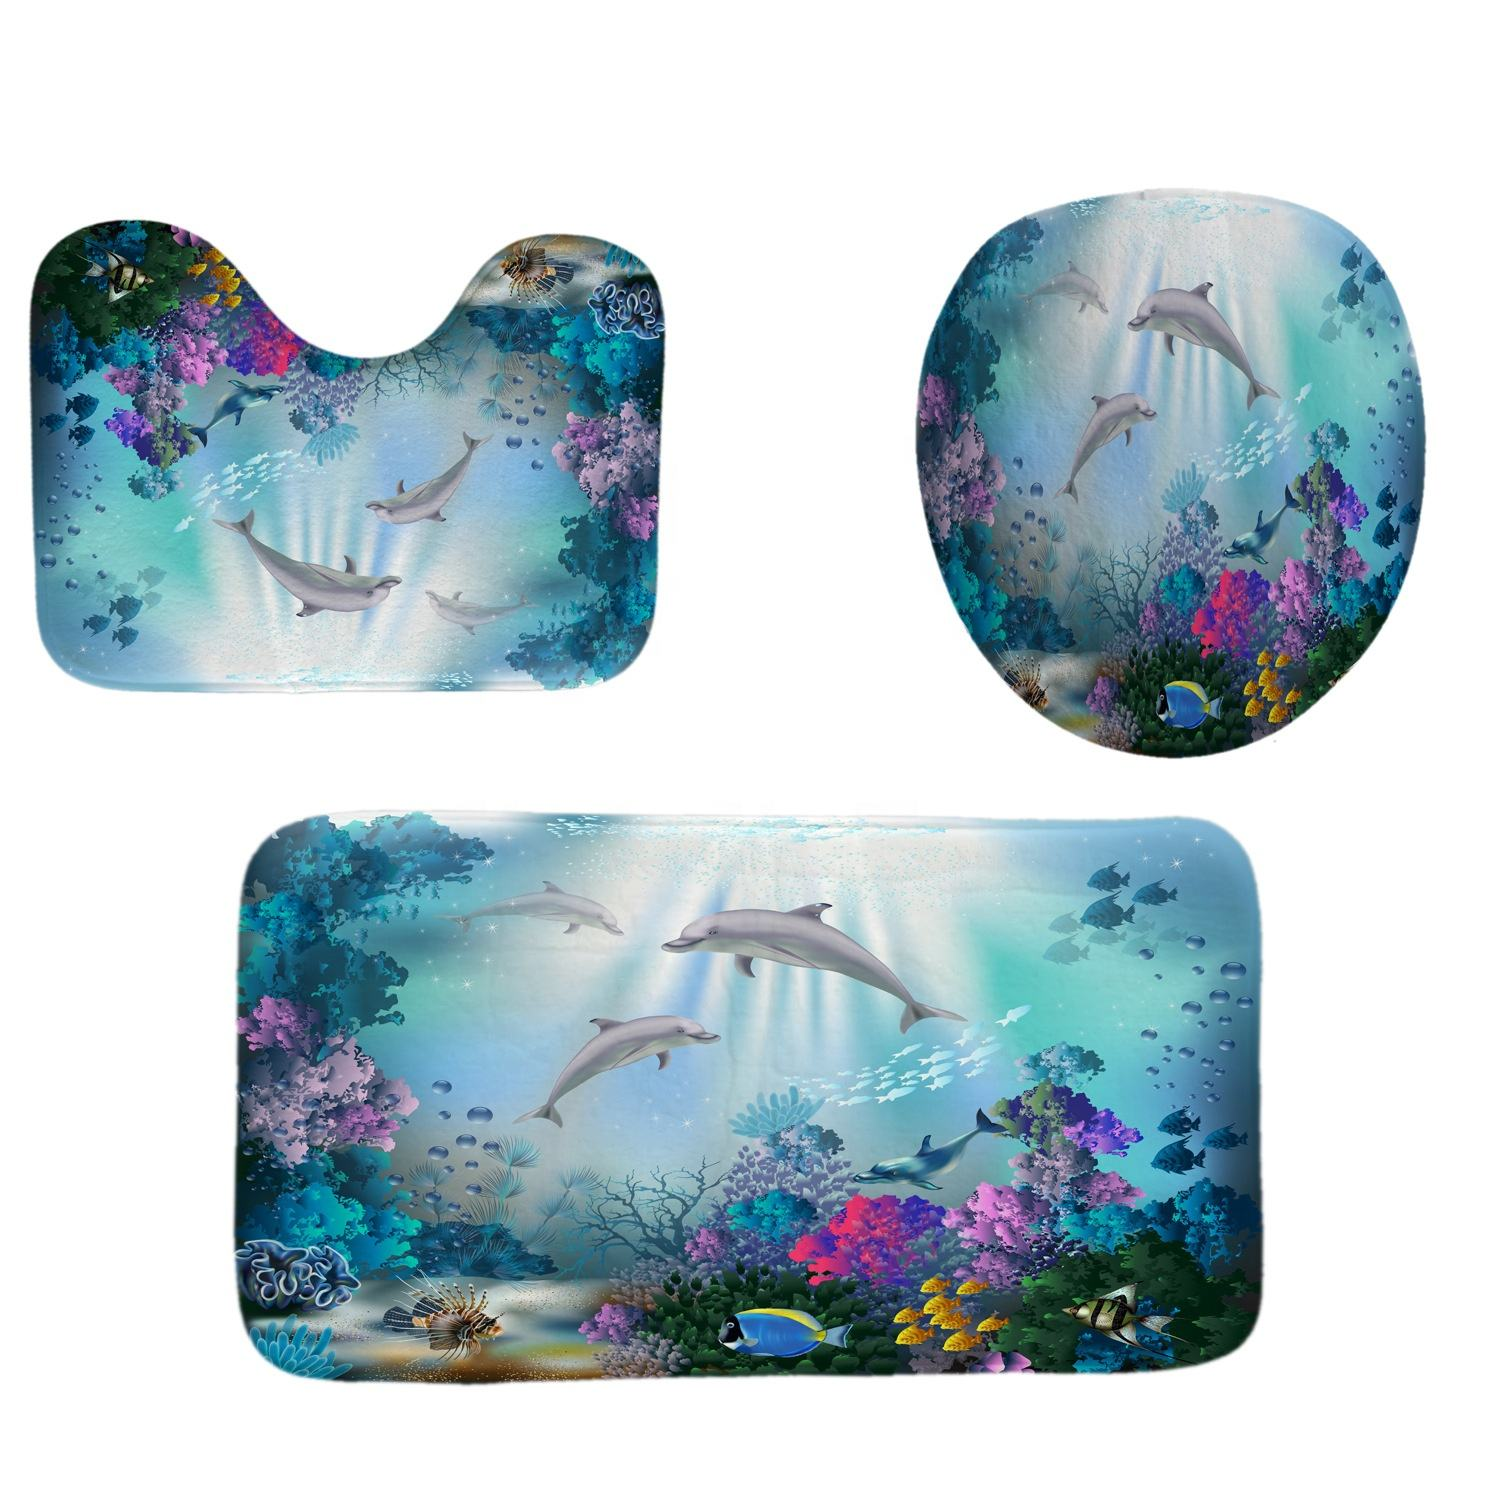 Ocean Design 4 In 1 Waterproof Fabric Bathroom 3D Shower Curtain Set with Non Slip Toilet Cover Rugs Mat Home Decoration